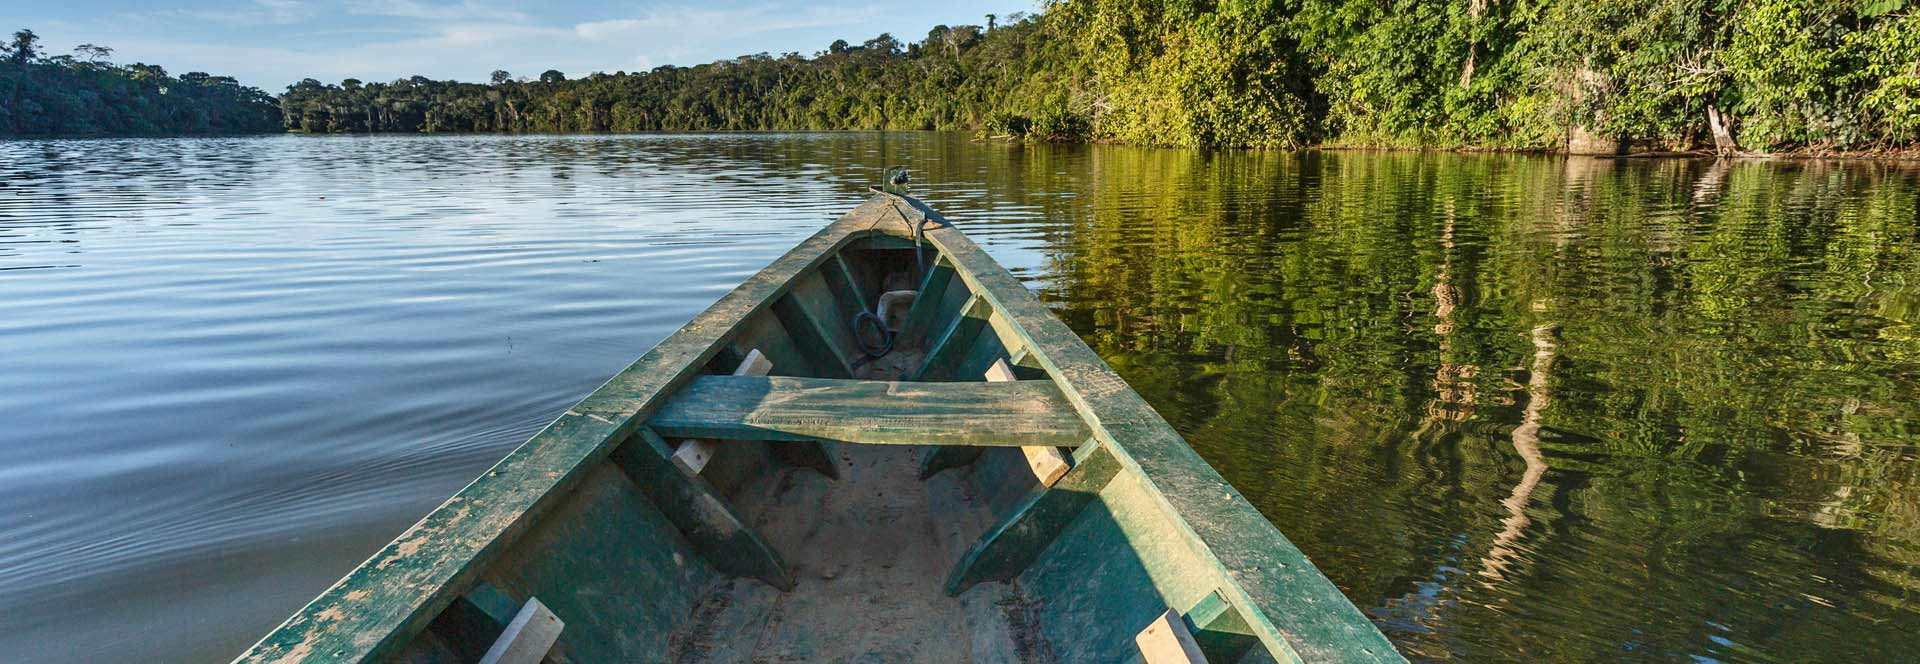 "Image of wooden canoe on Amazon River with caption reading ""Amazon Ventures Further Into Consumer Healthcare"""